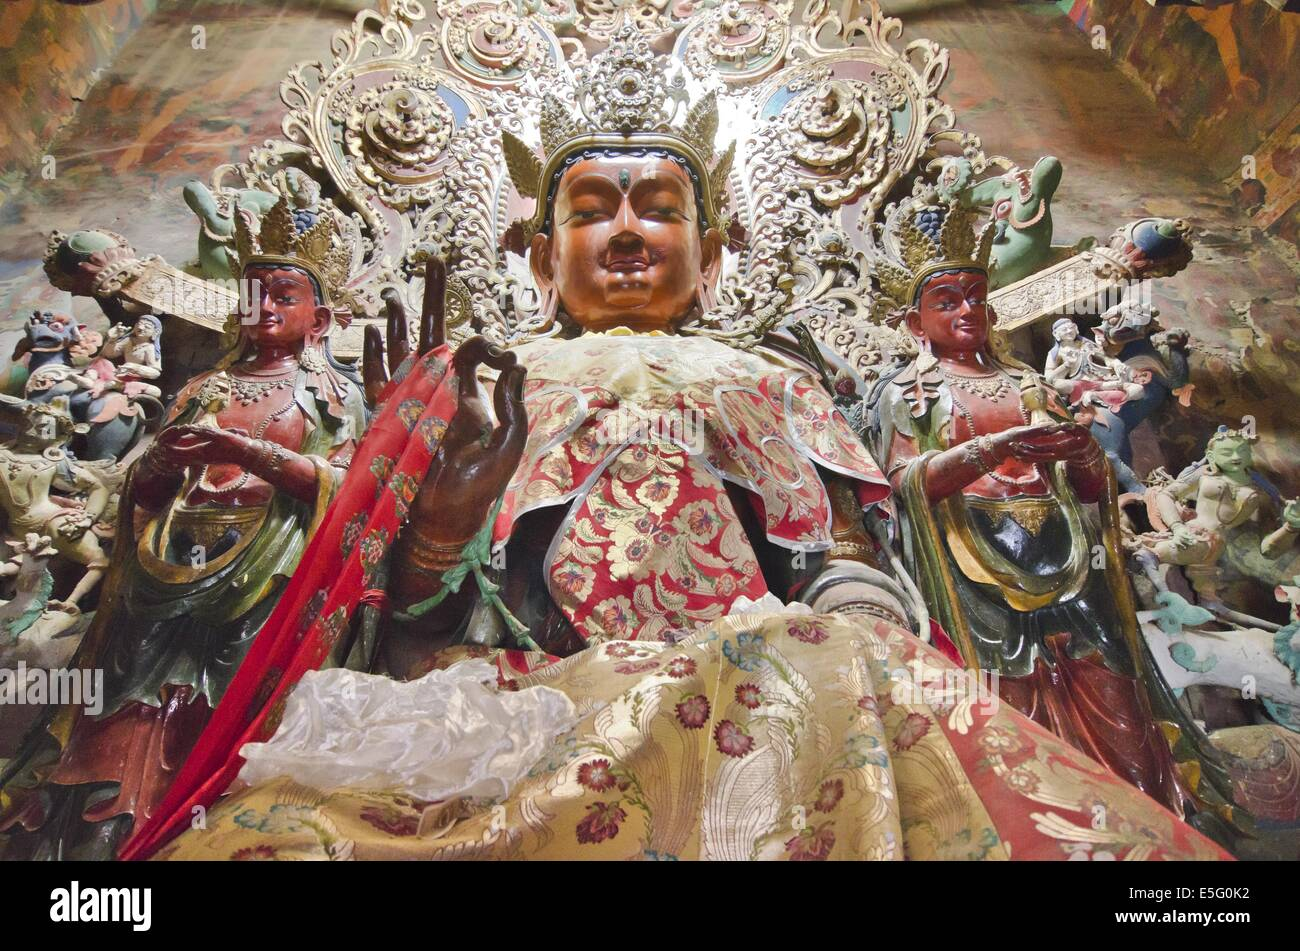 Tara statue in the Gyantse Kumbum, a multi-storied aggregate of Buddhist chapels, in Tibet - Stock Image